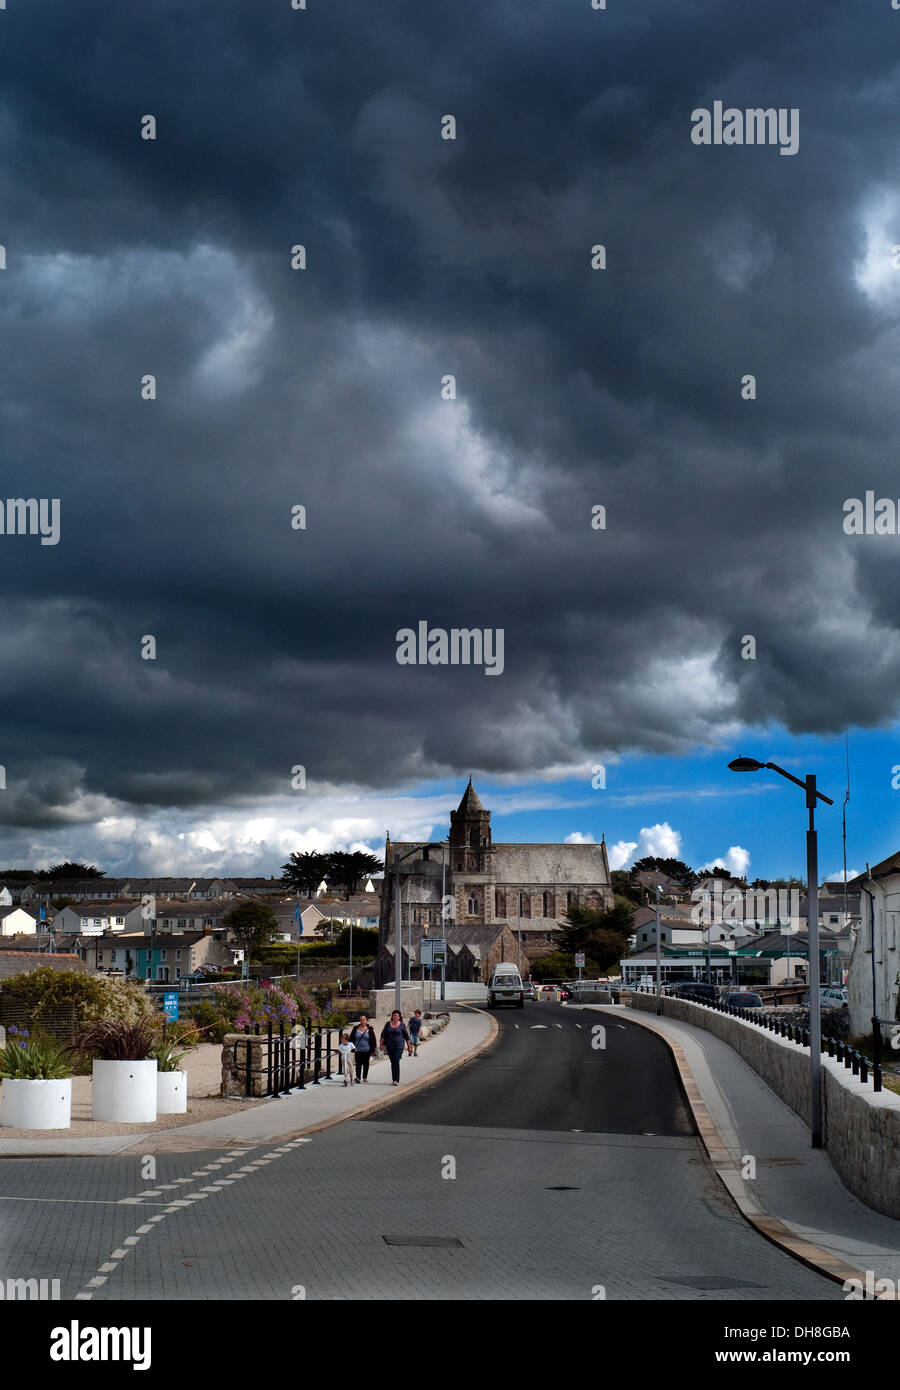 Hayle town Cornwall under thunderous black sky and dark clouds - Stock Image